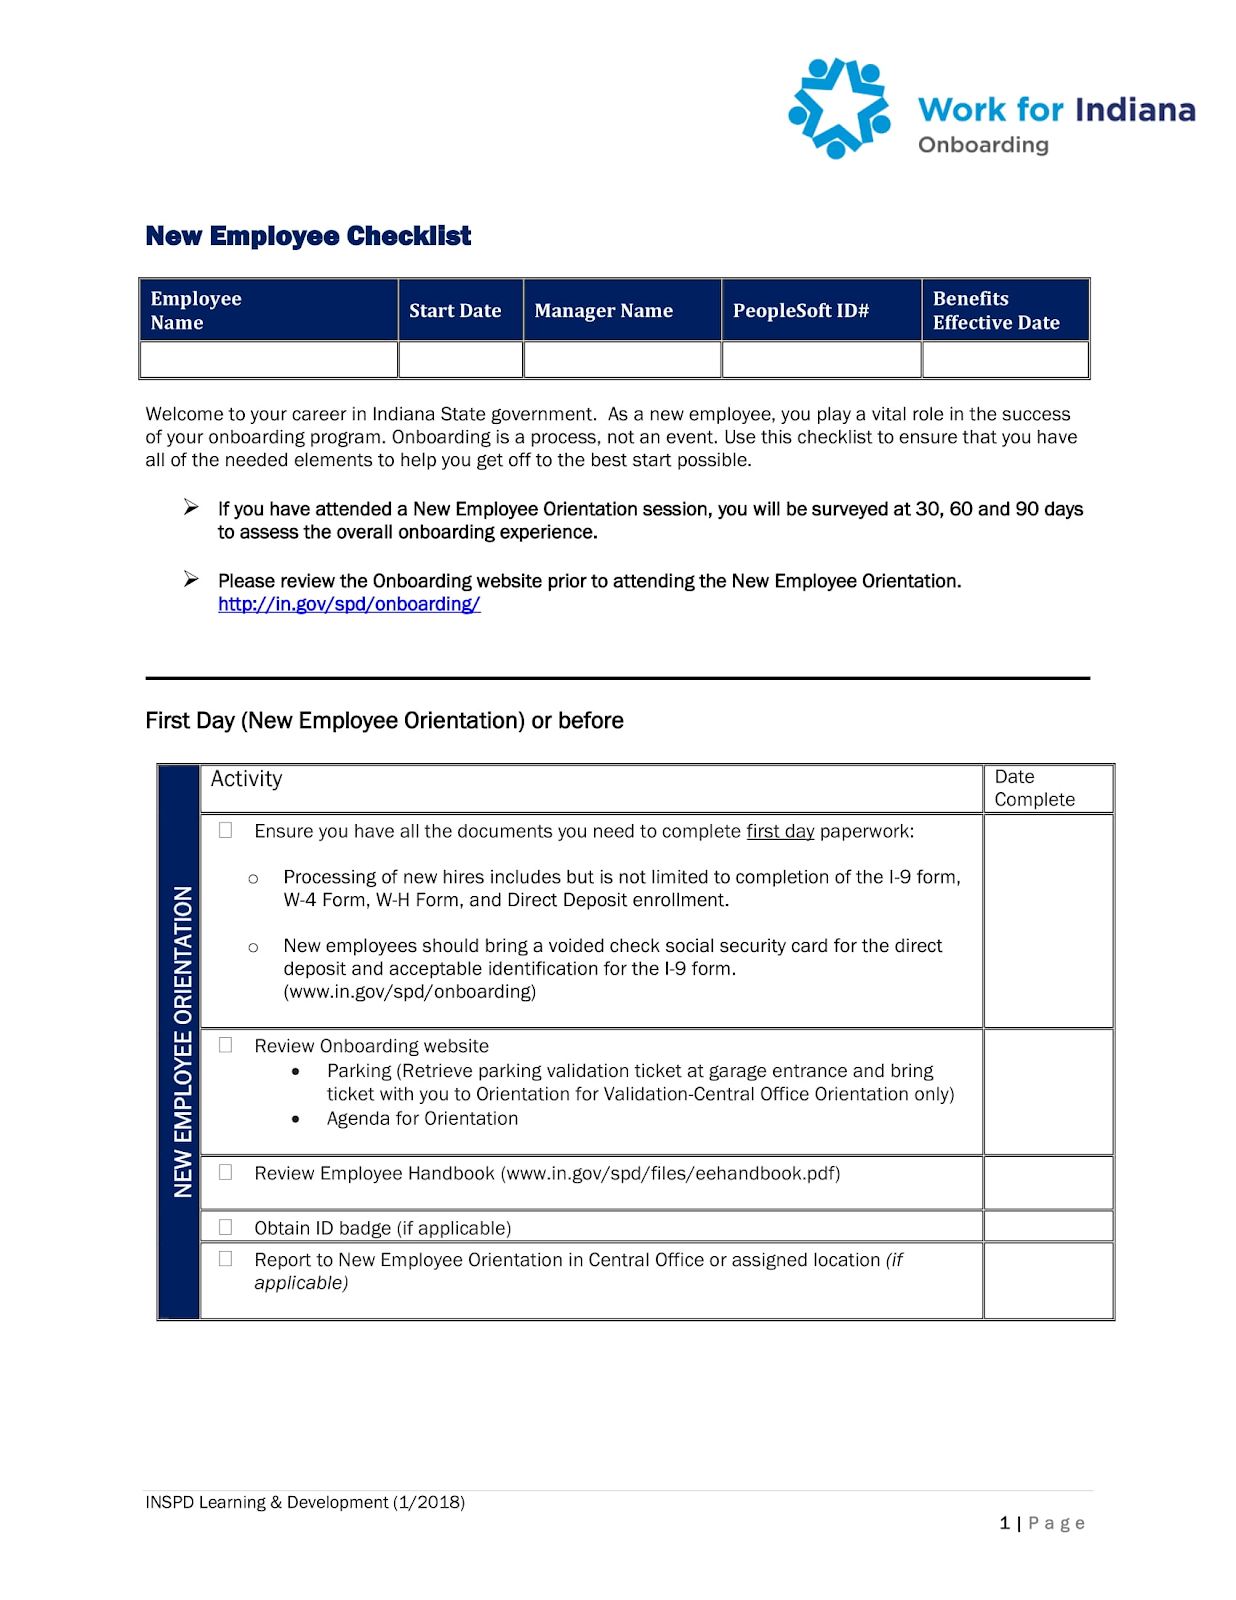 An example of a new employee checklist